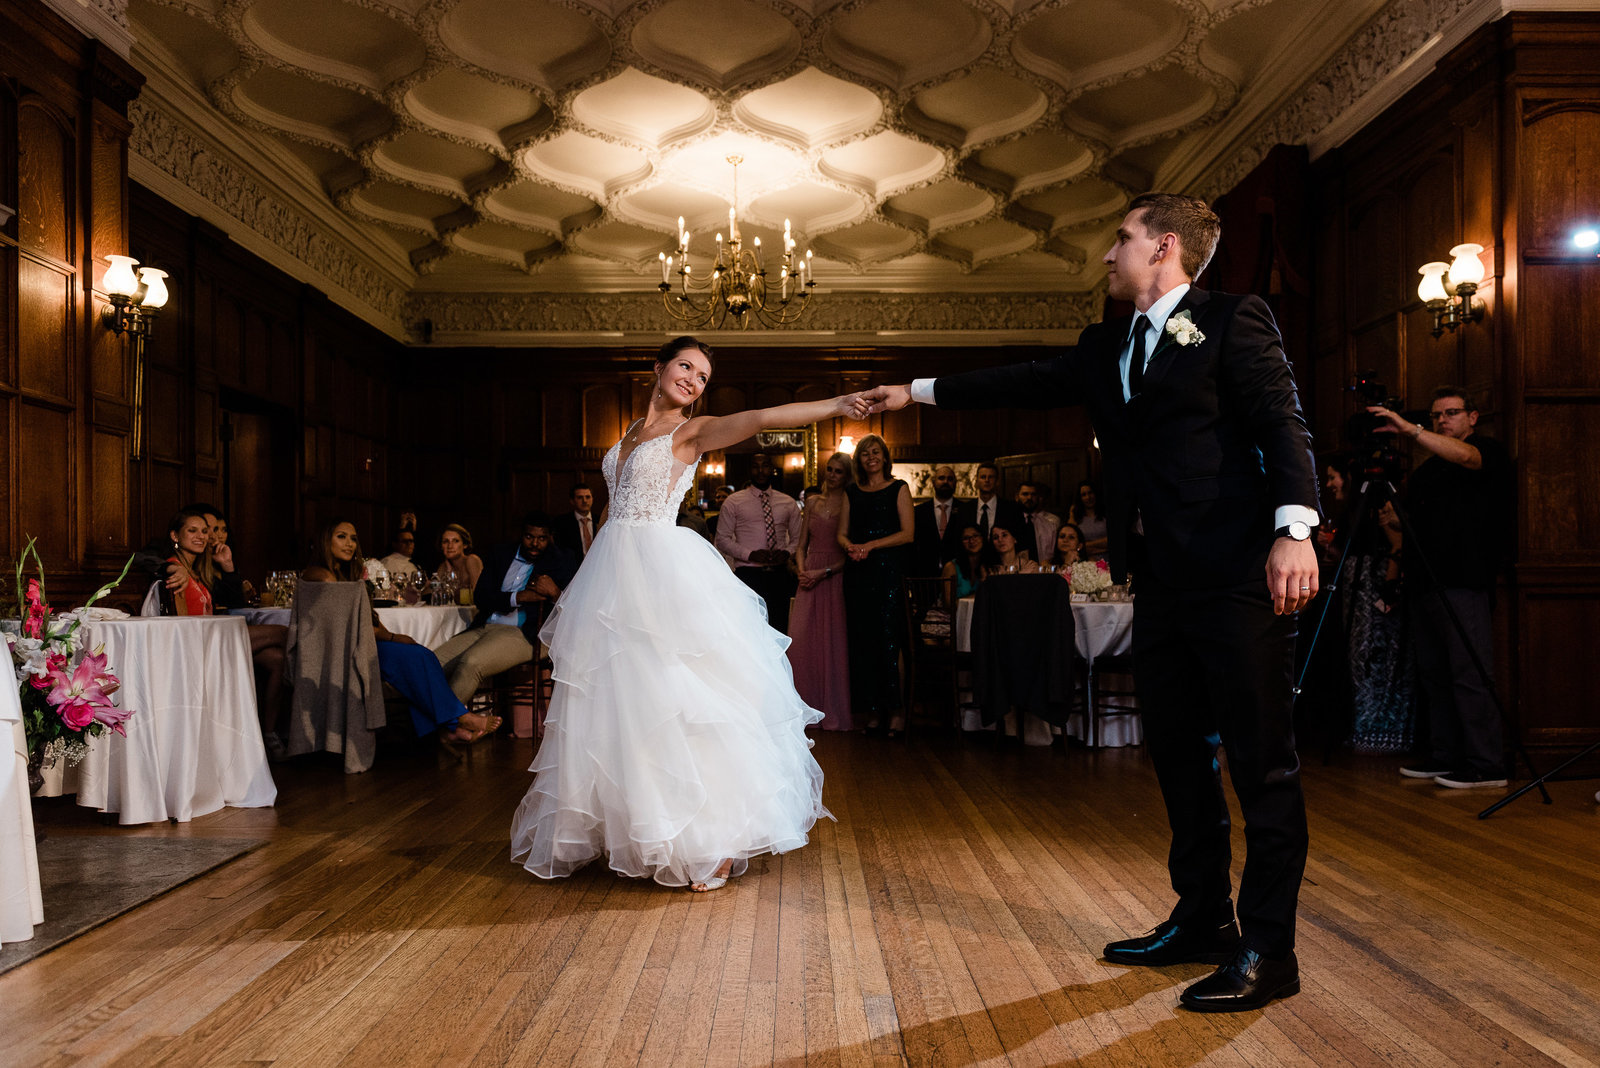 Couple shares their first dance at their Mansion at Turner Hill wedding in Ipswich MA